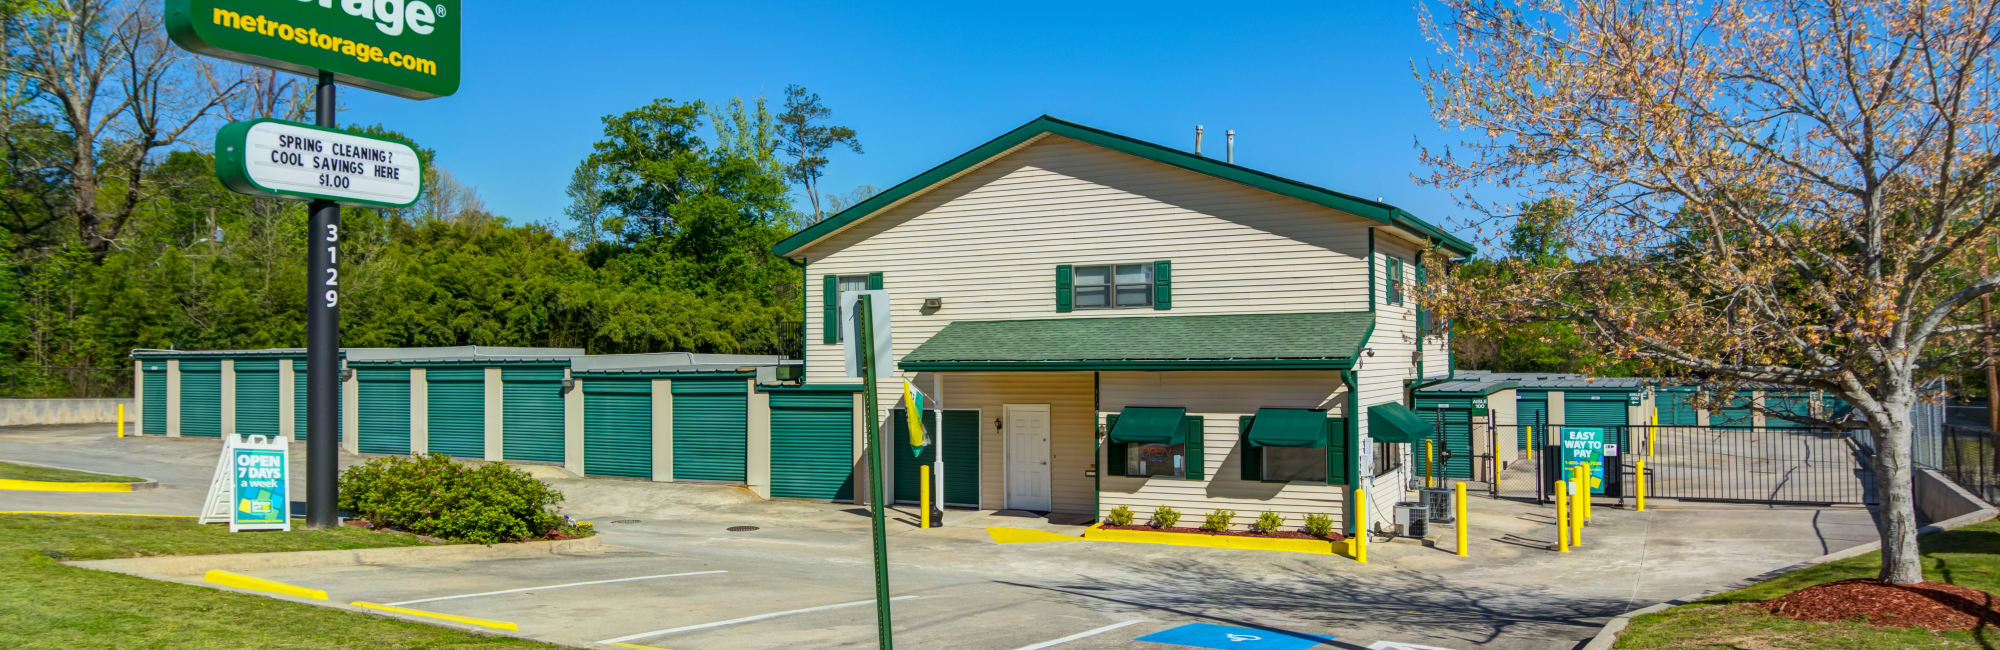 Metro Self Storage In Lithia Springs, GA